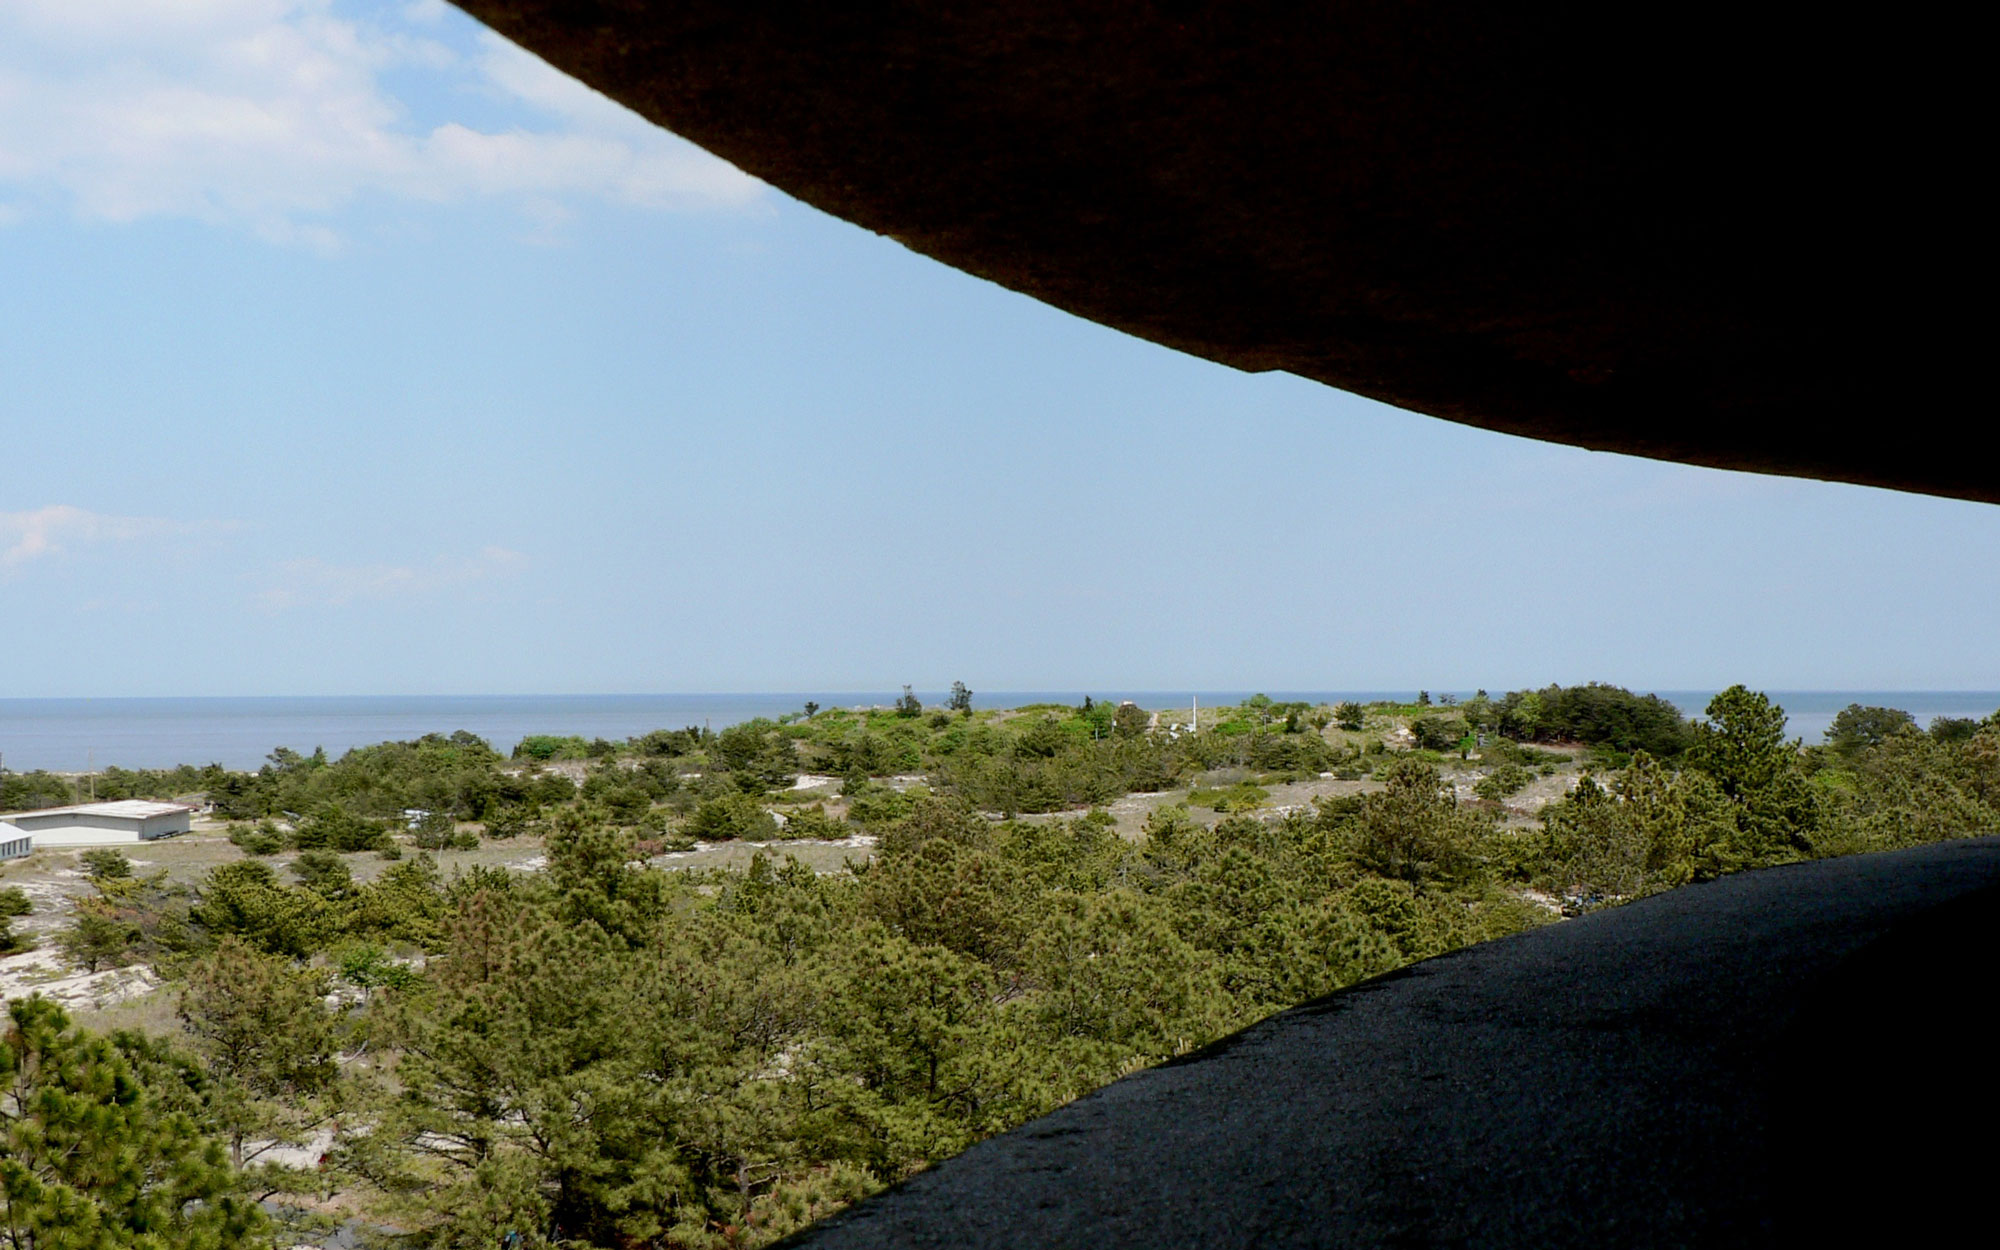 Delaware from the WWII Tower at Cape Henlopen State Park